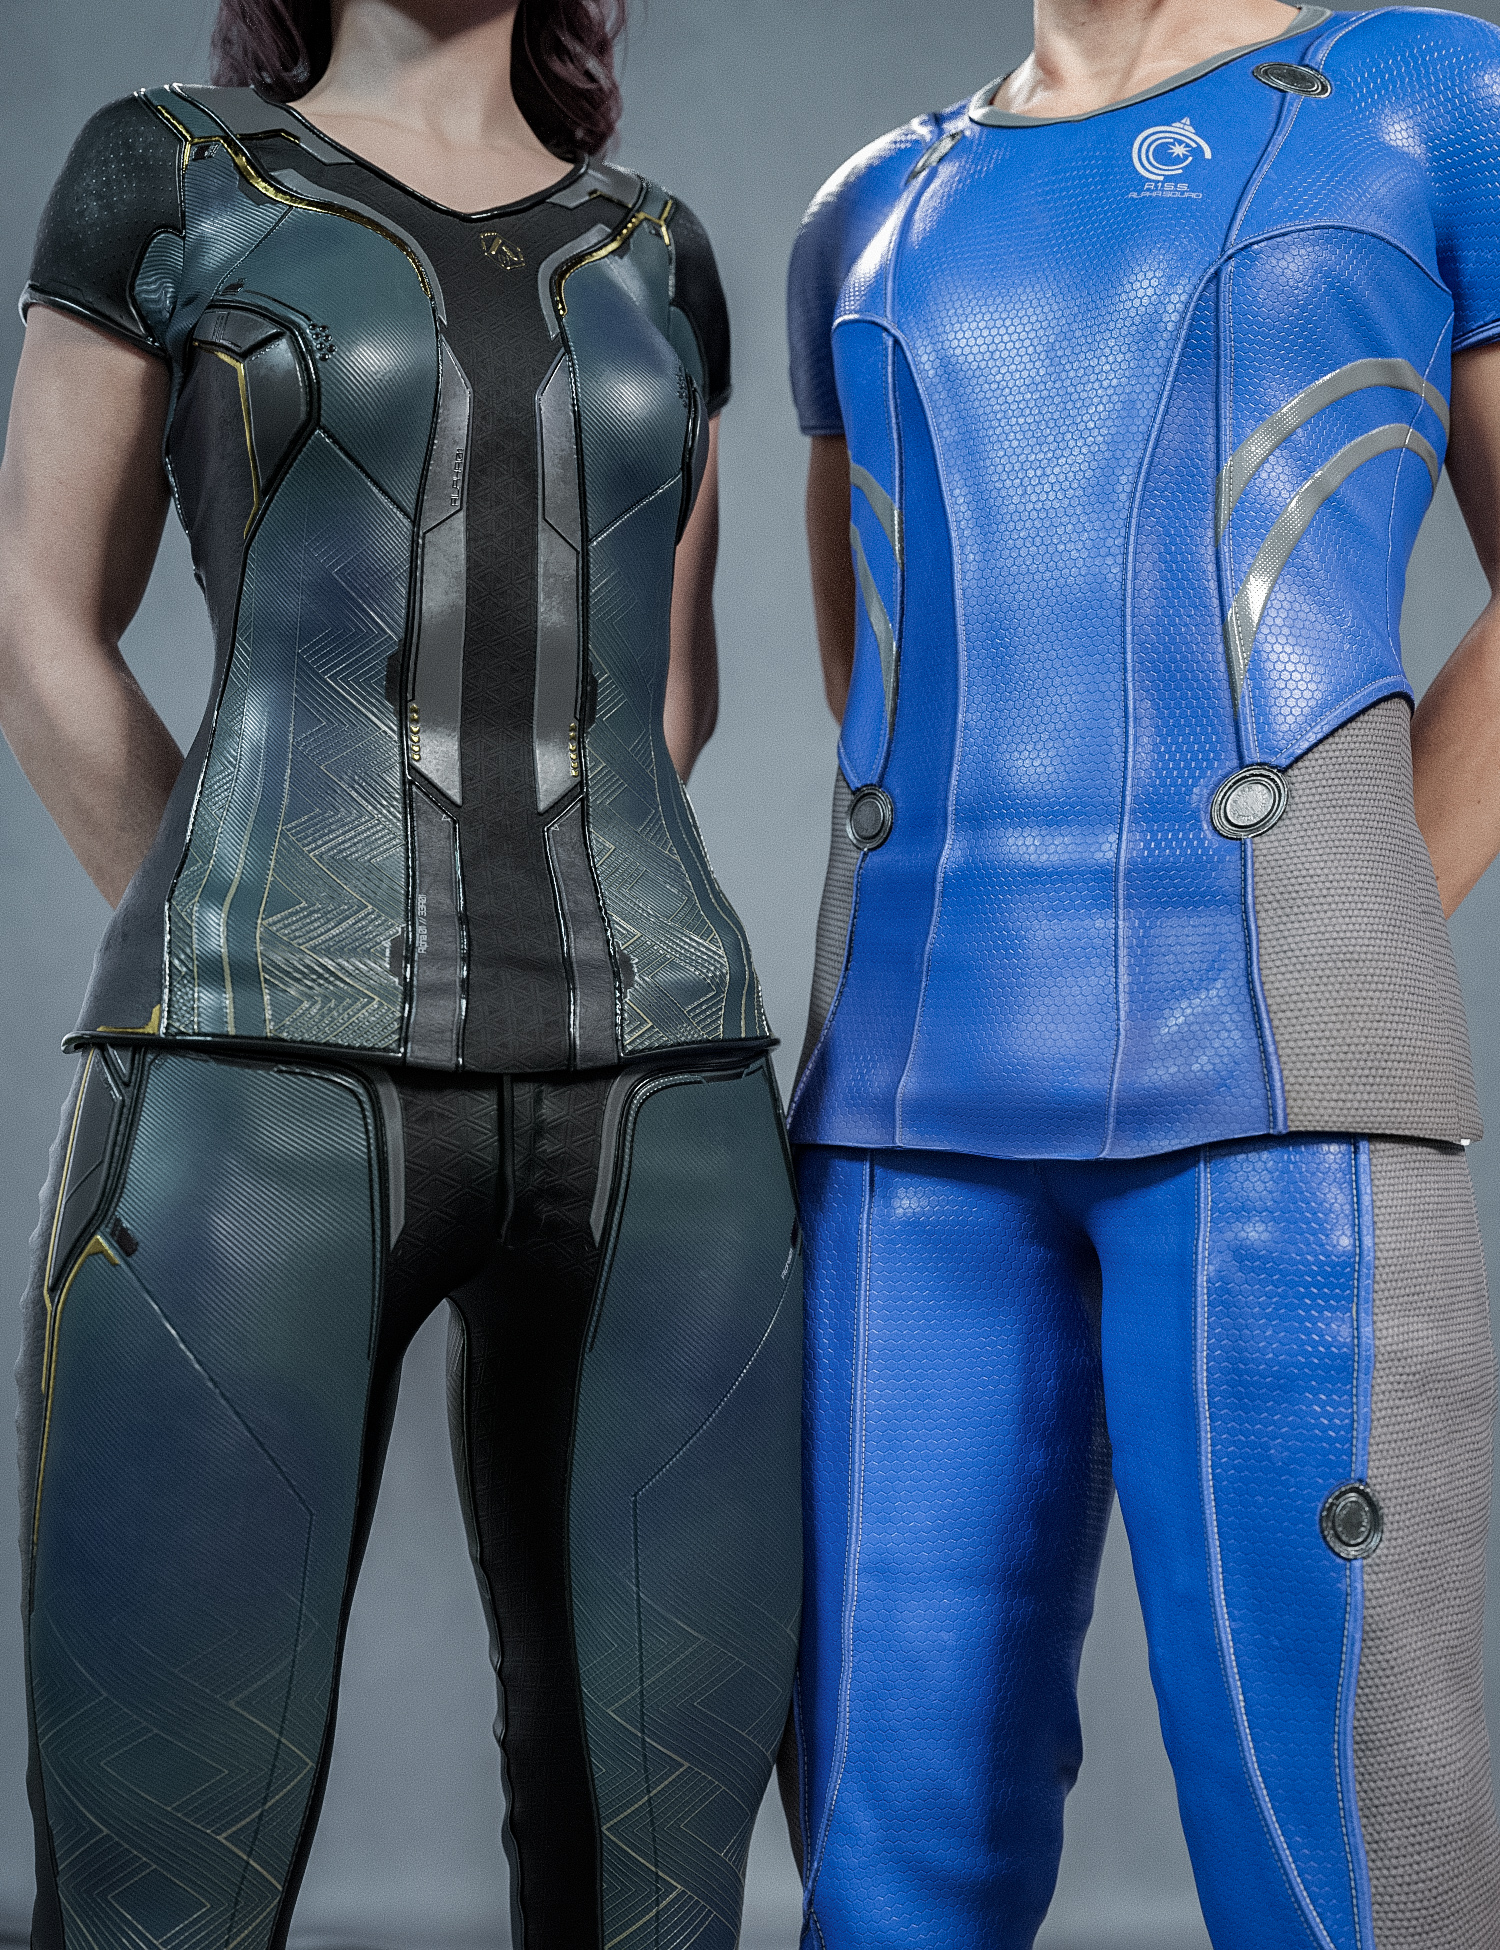 Space Station Futuristic Styles for Everyday 2 by: Aeon Soul, 3D Models by Daz 3D